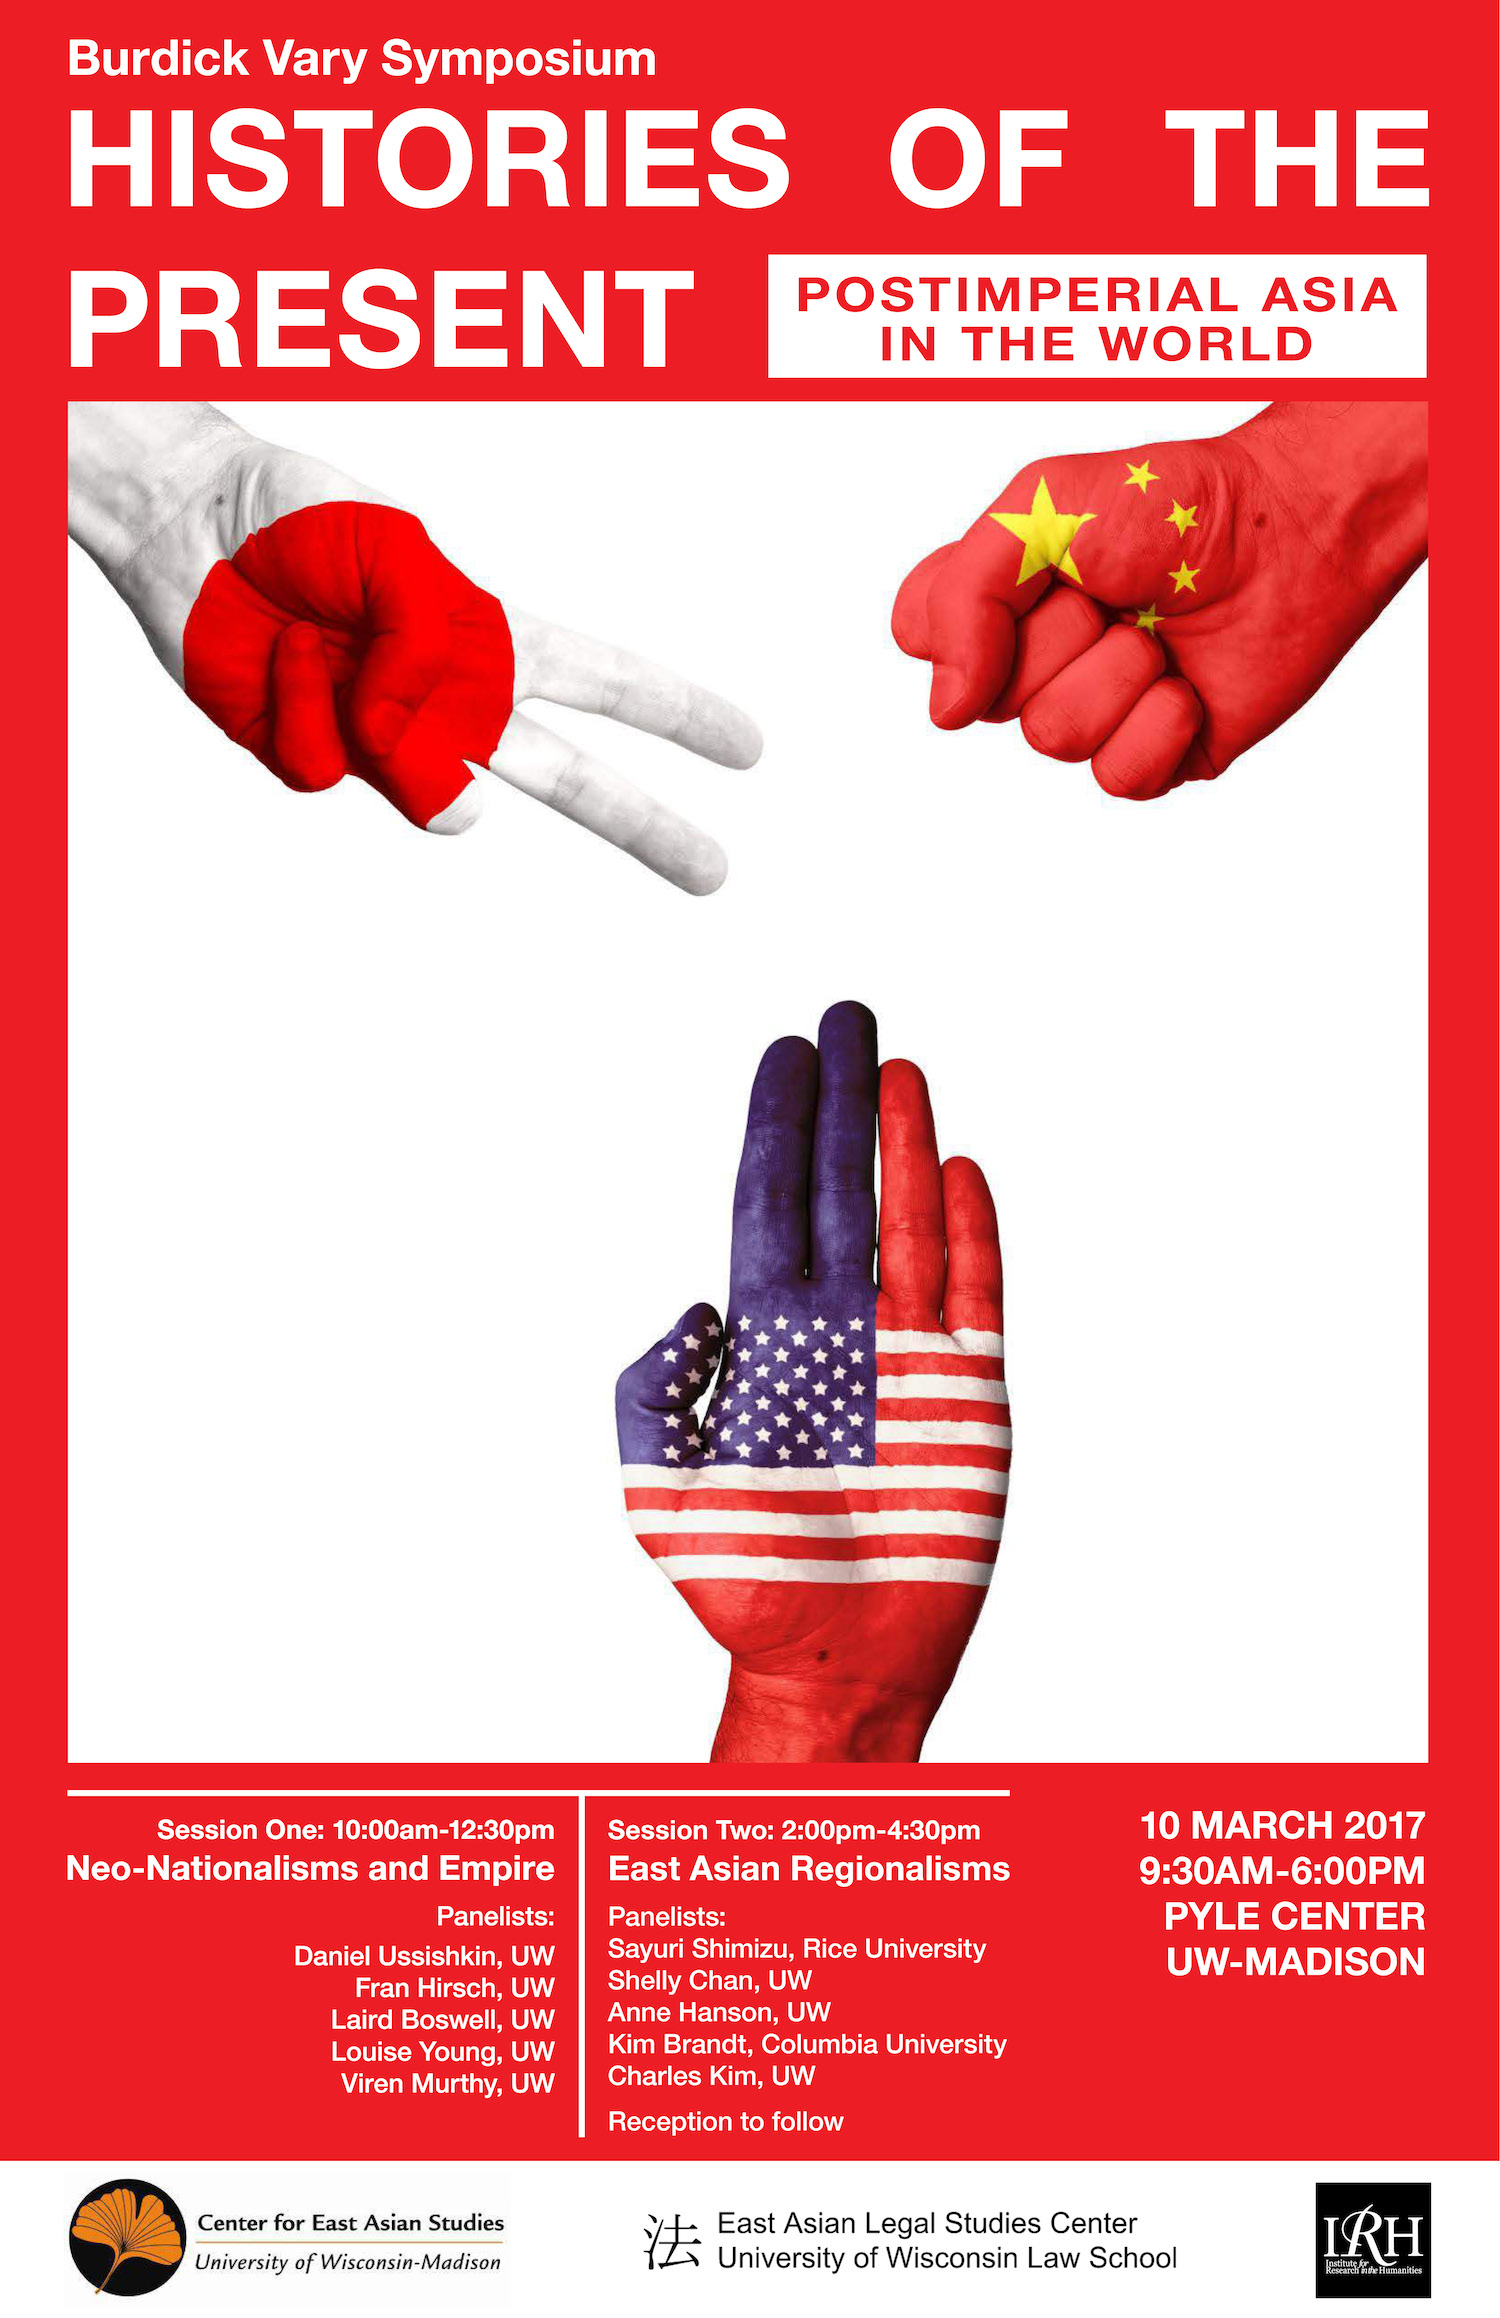 """Image of Poster for """"Histories of the Present..."""" event depicting three hands making 'rock-paper-scissors' motions with U.S., Japanese, and Chinese flags superimposed on the hands"""